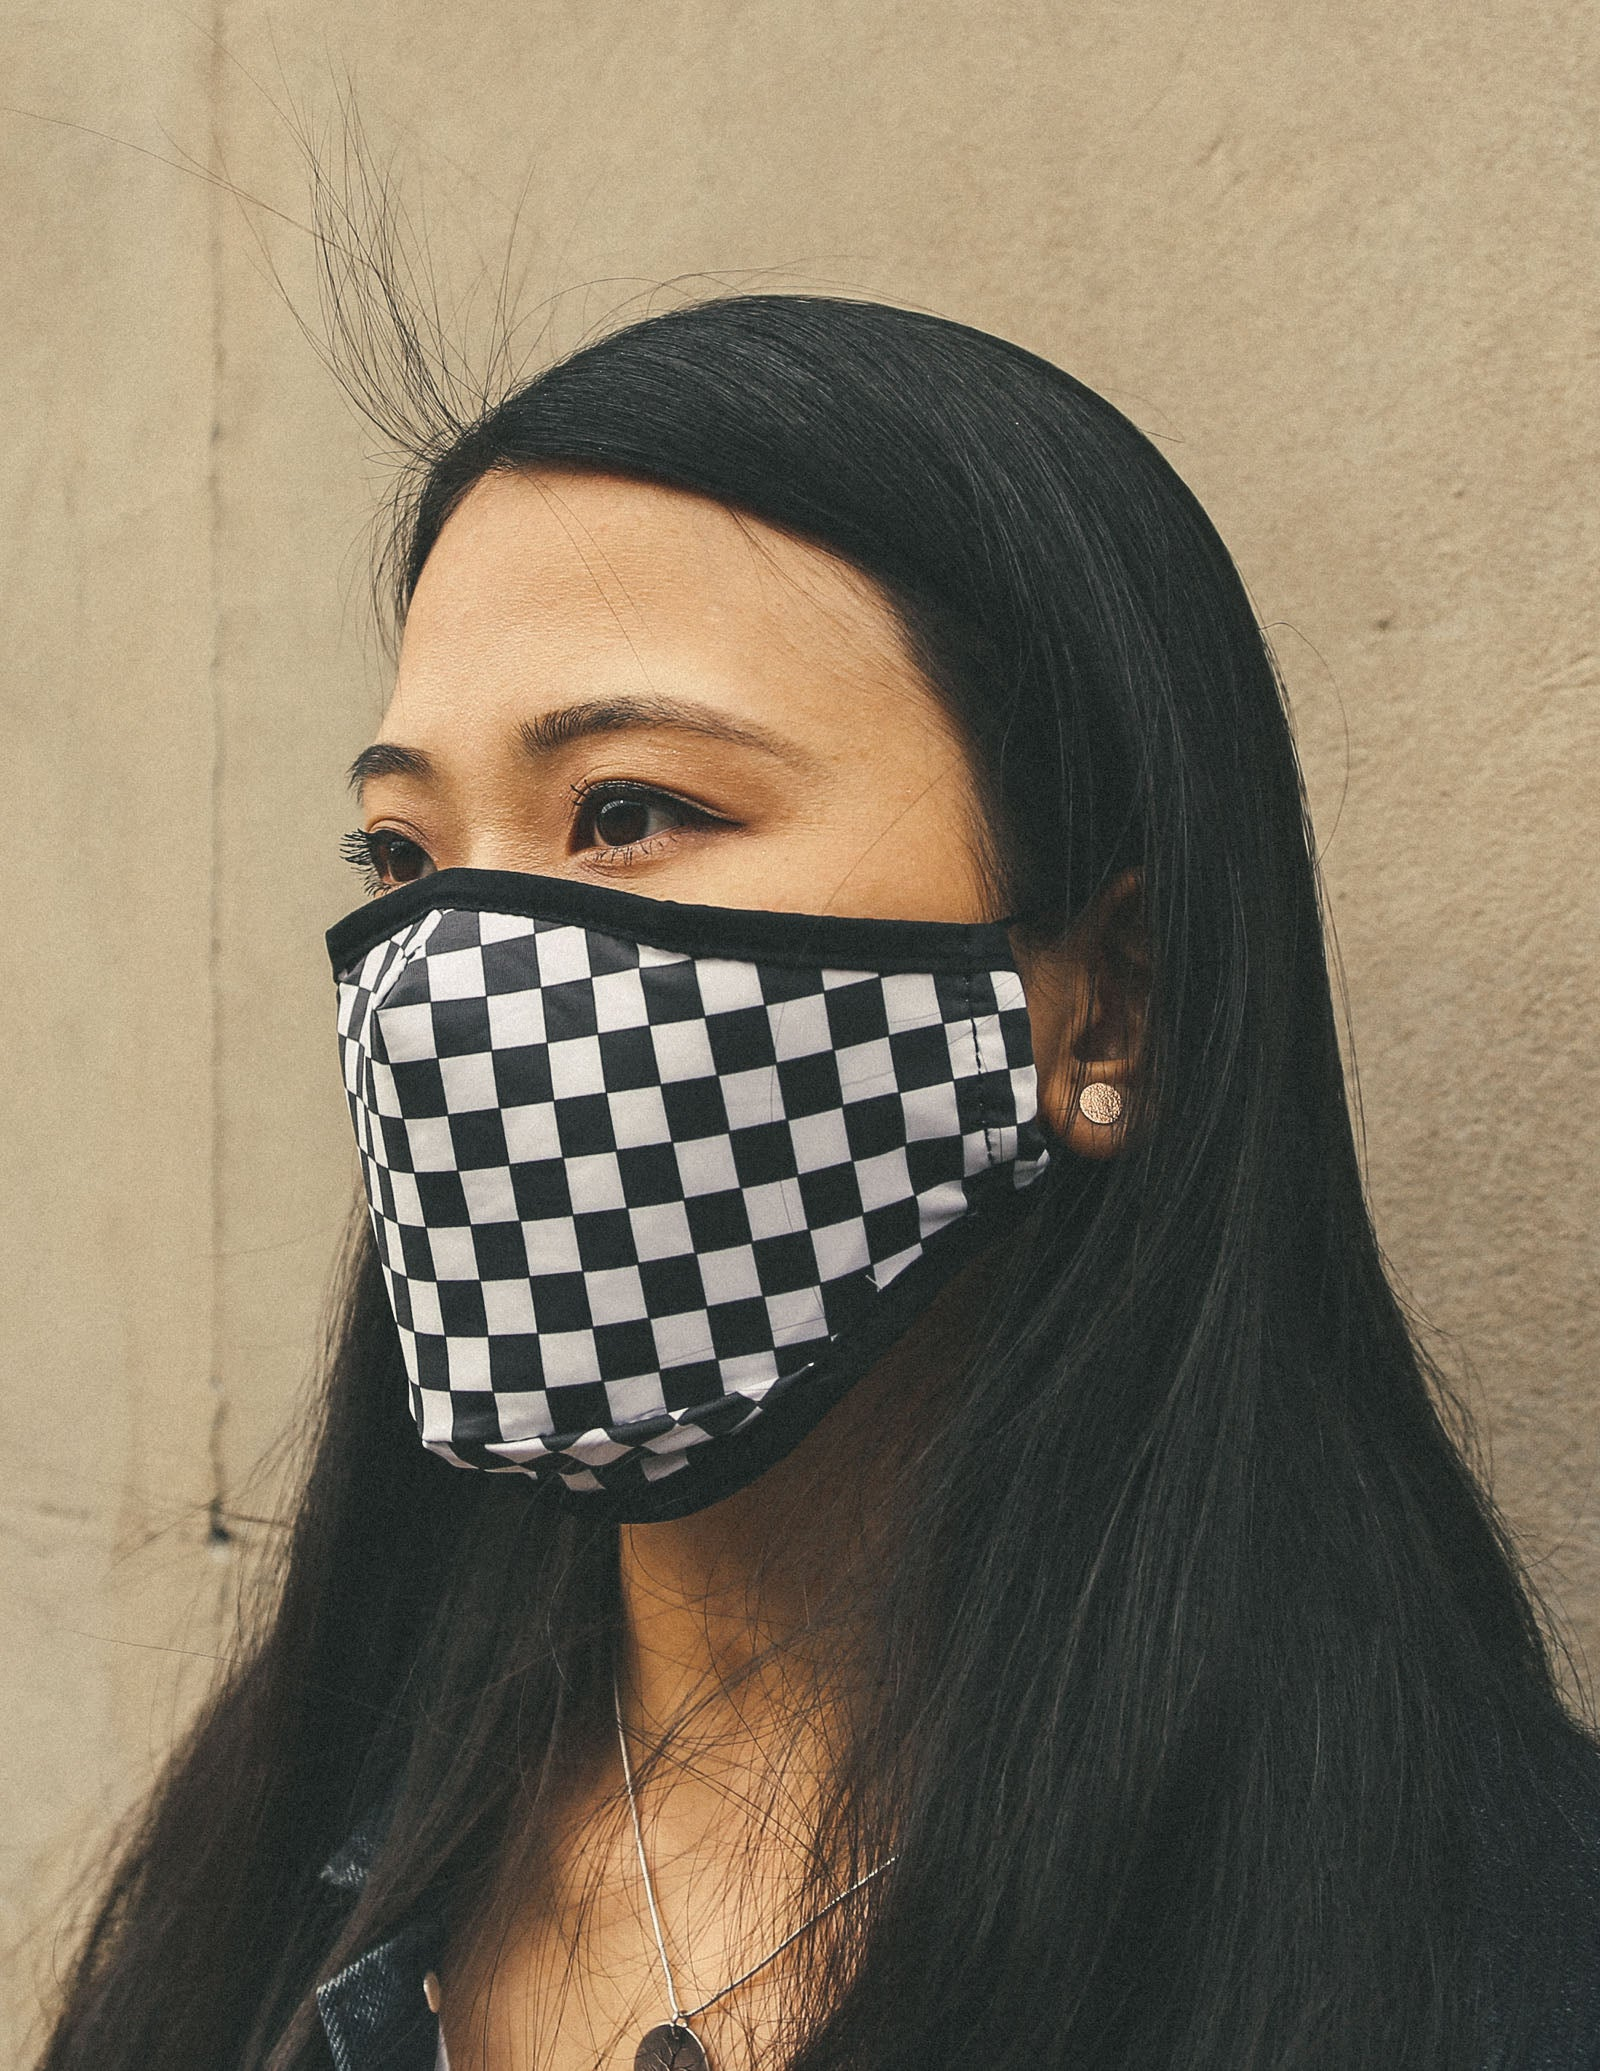 18091: FYDELITY- Premium Protective Fabric Face Covering Mask: Indy